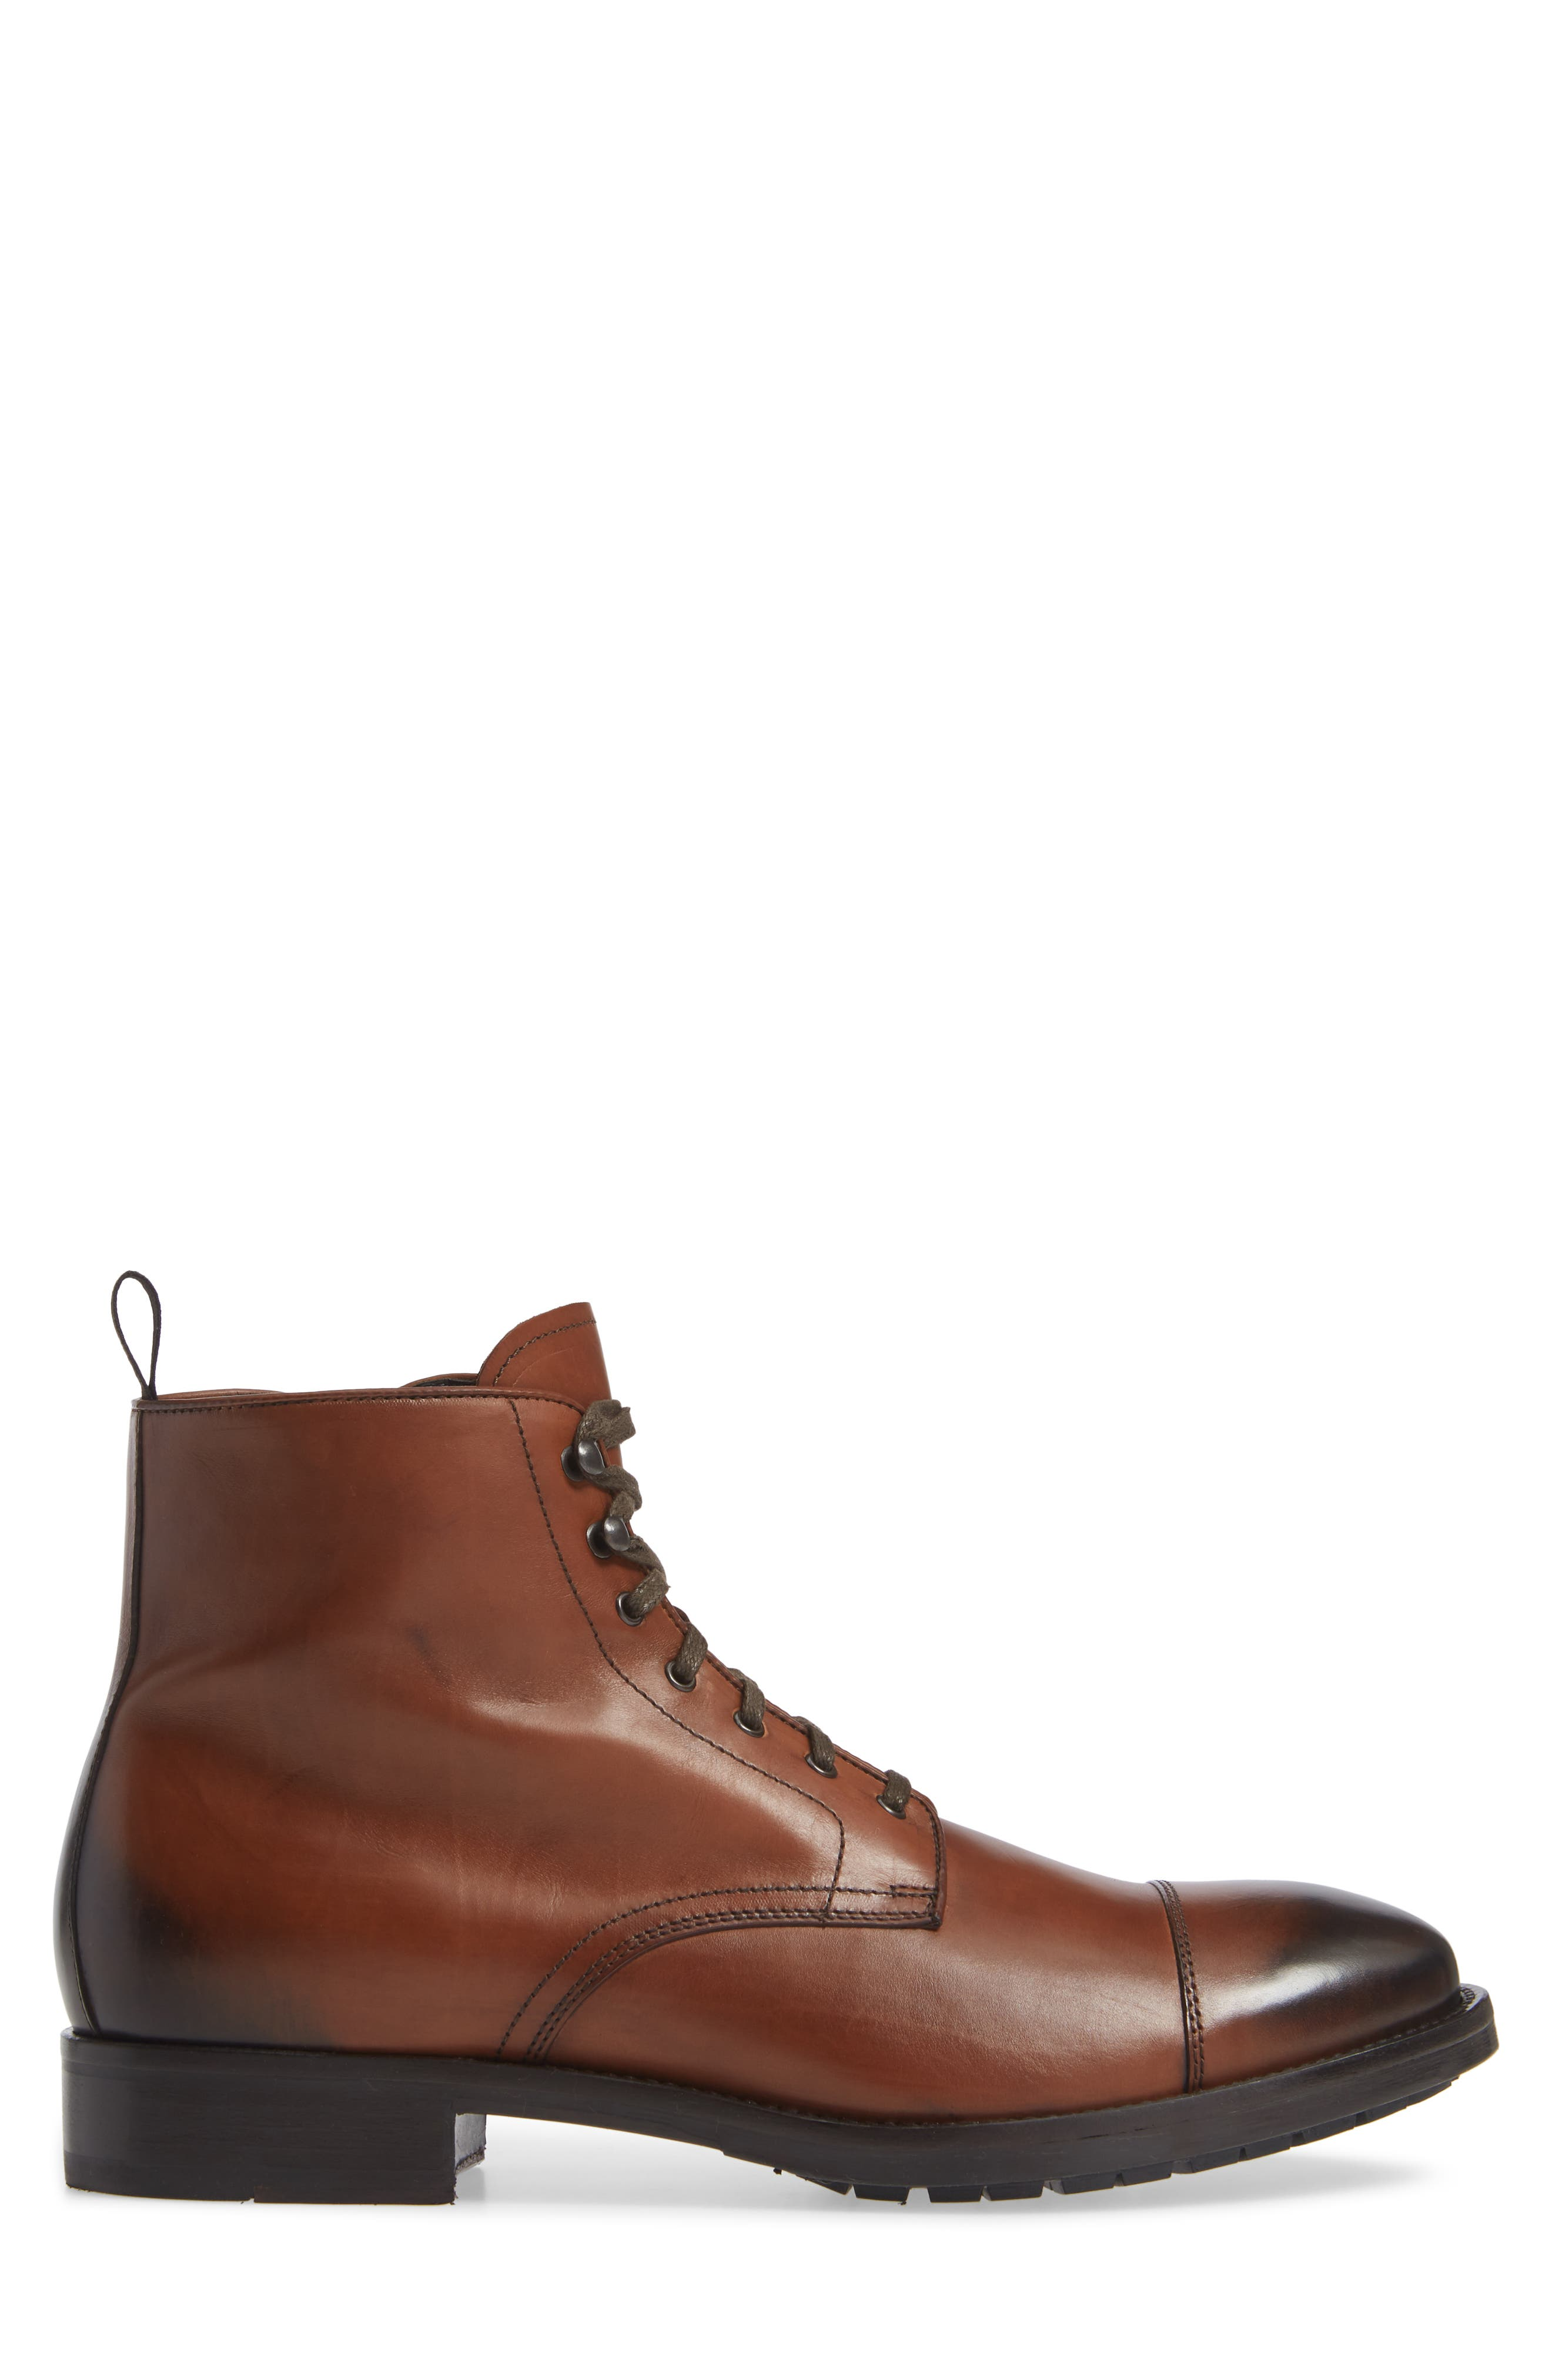 Concord Cap Toe Boot,                             Alternate thumbnail 3, color,                             BROWN LEATHER